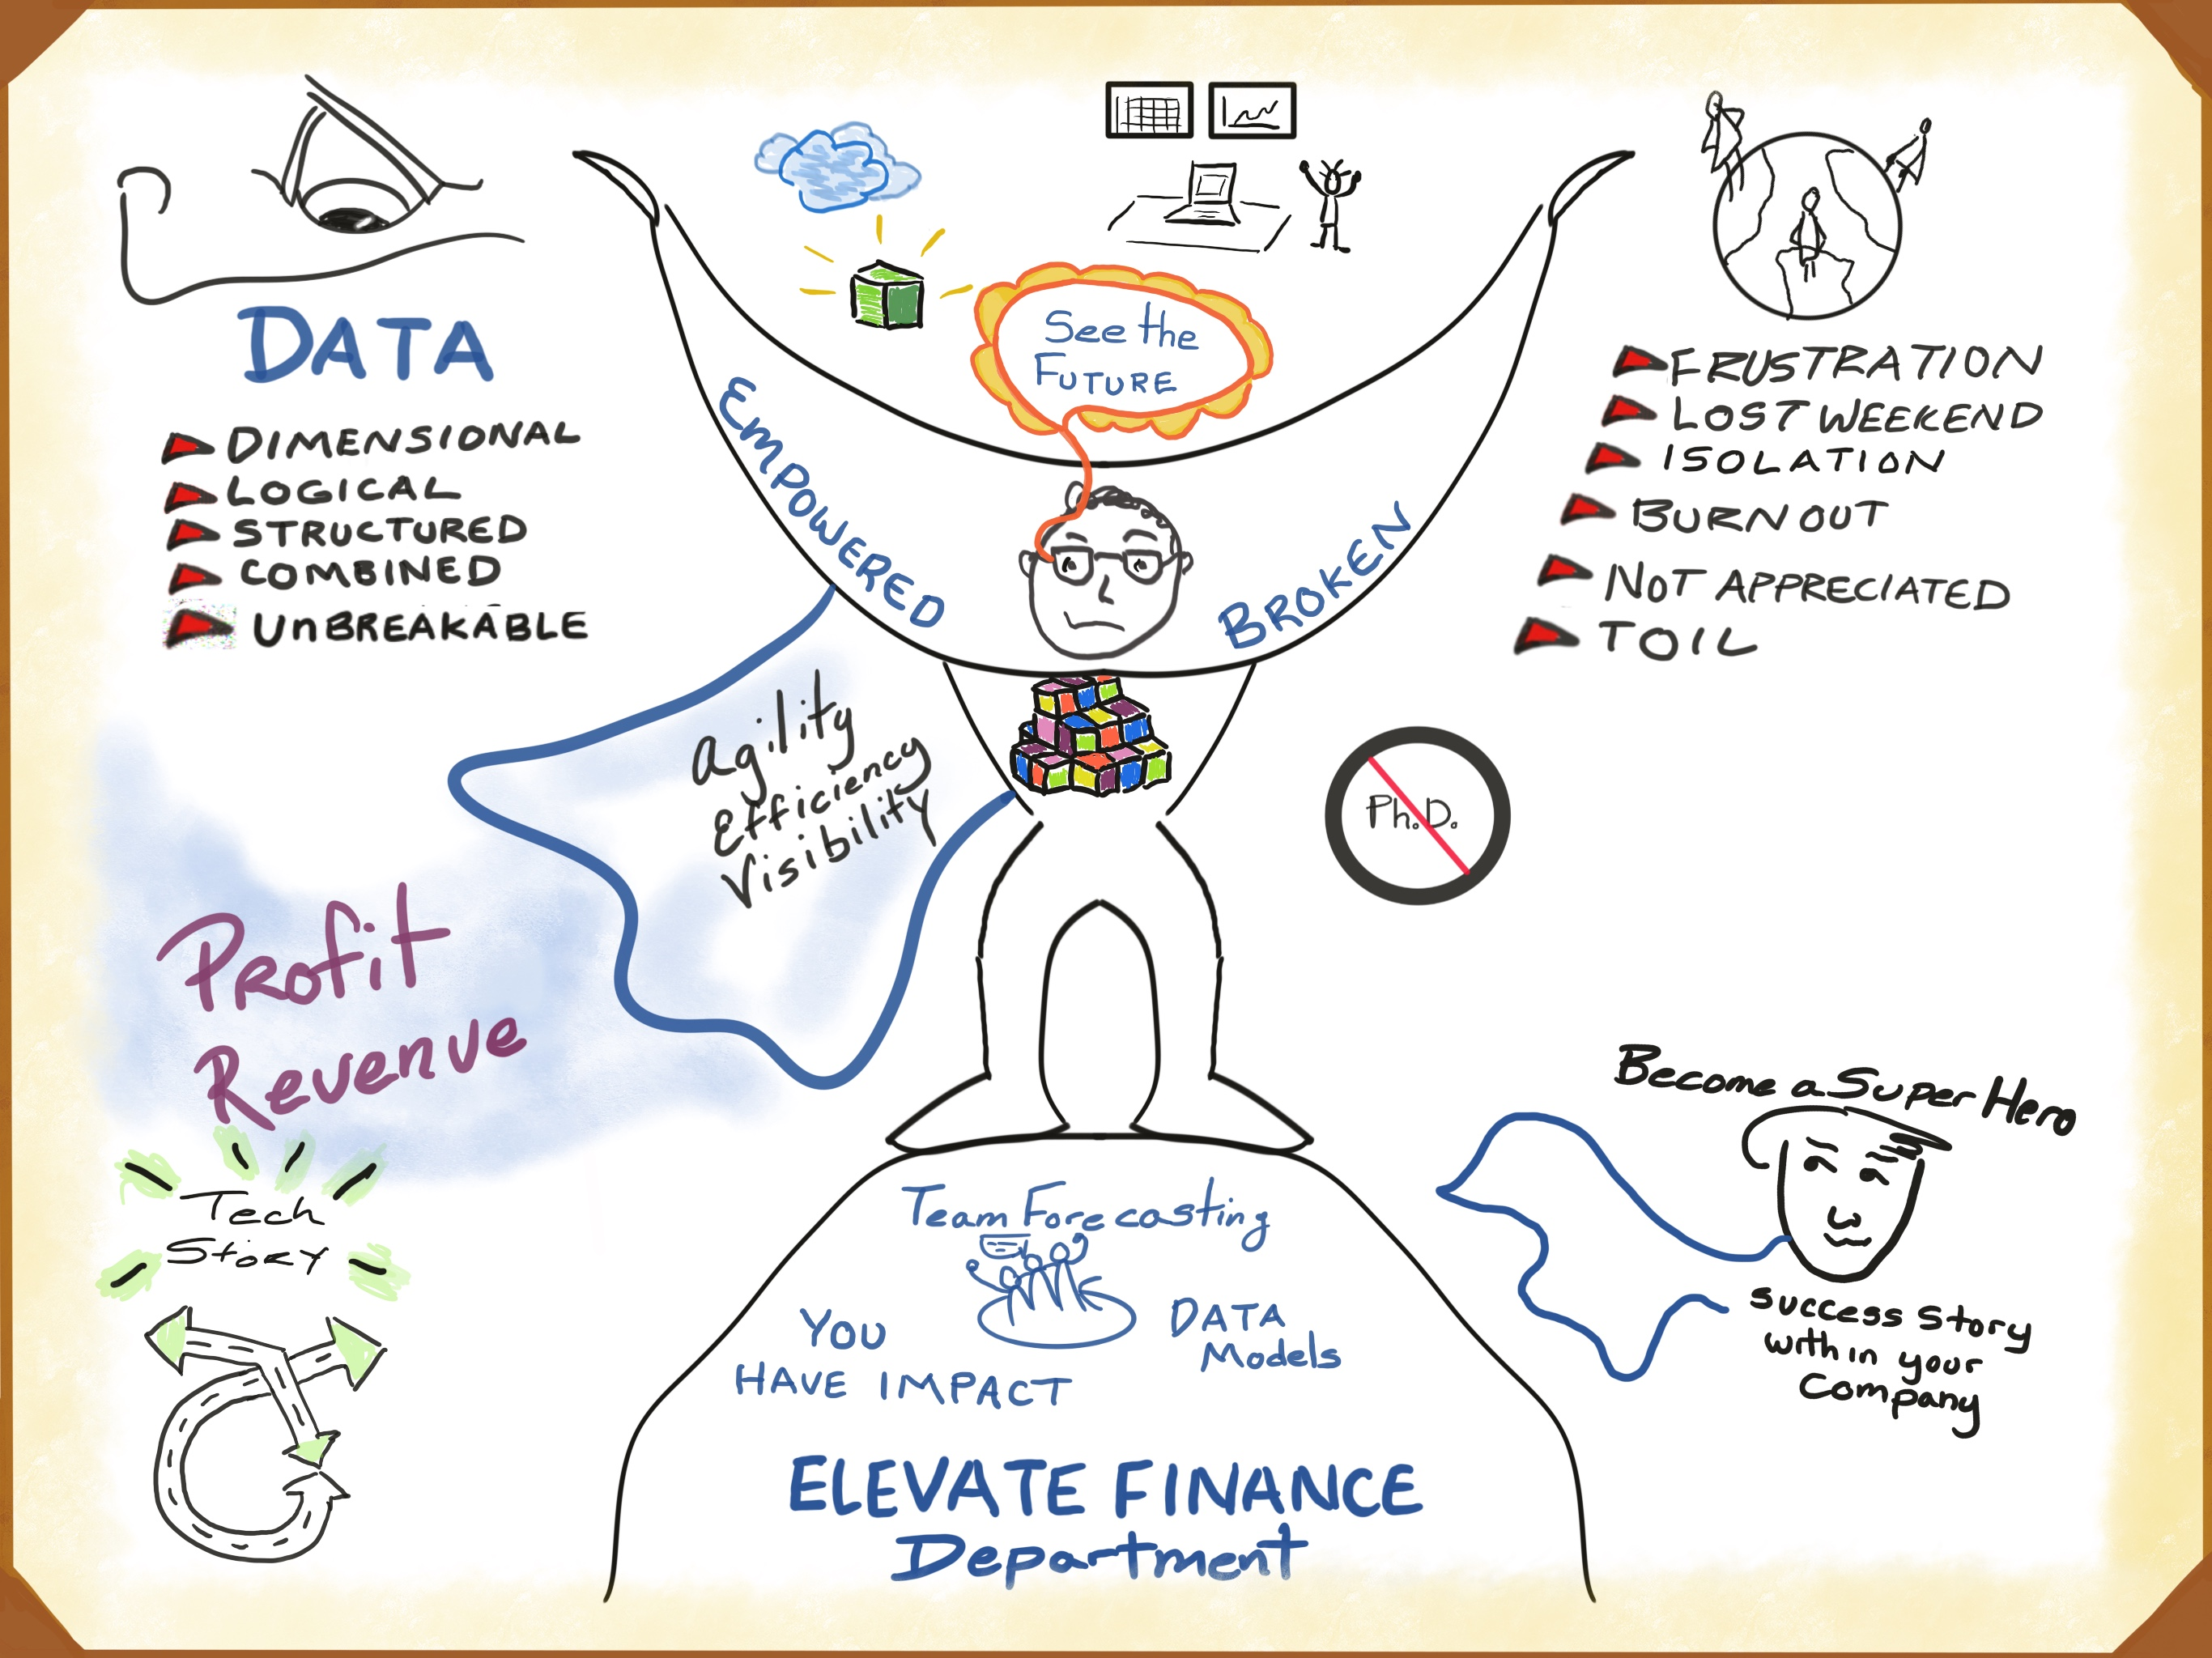 superhero man with cape in center surrounded by ideas related to cloud data